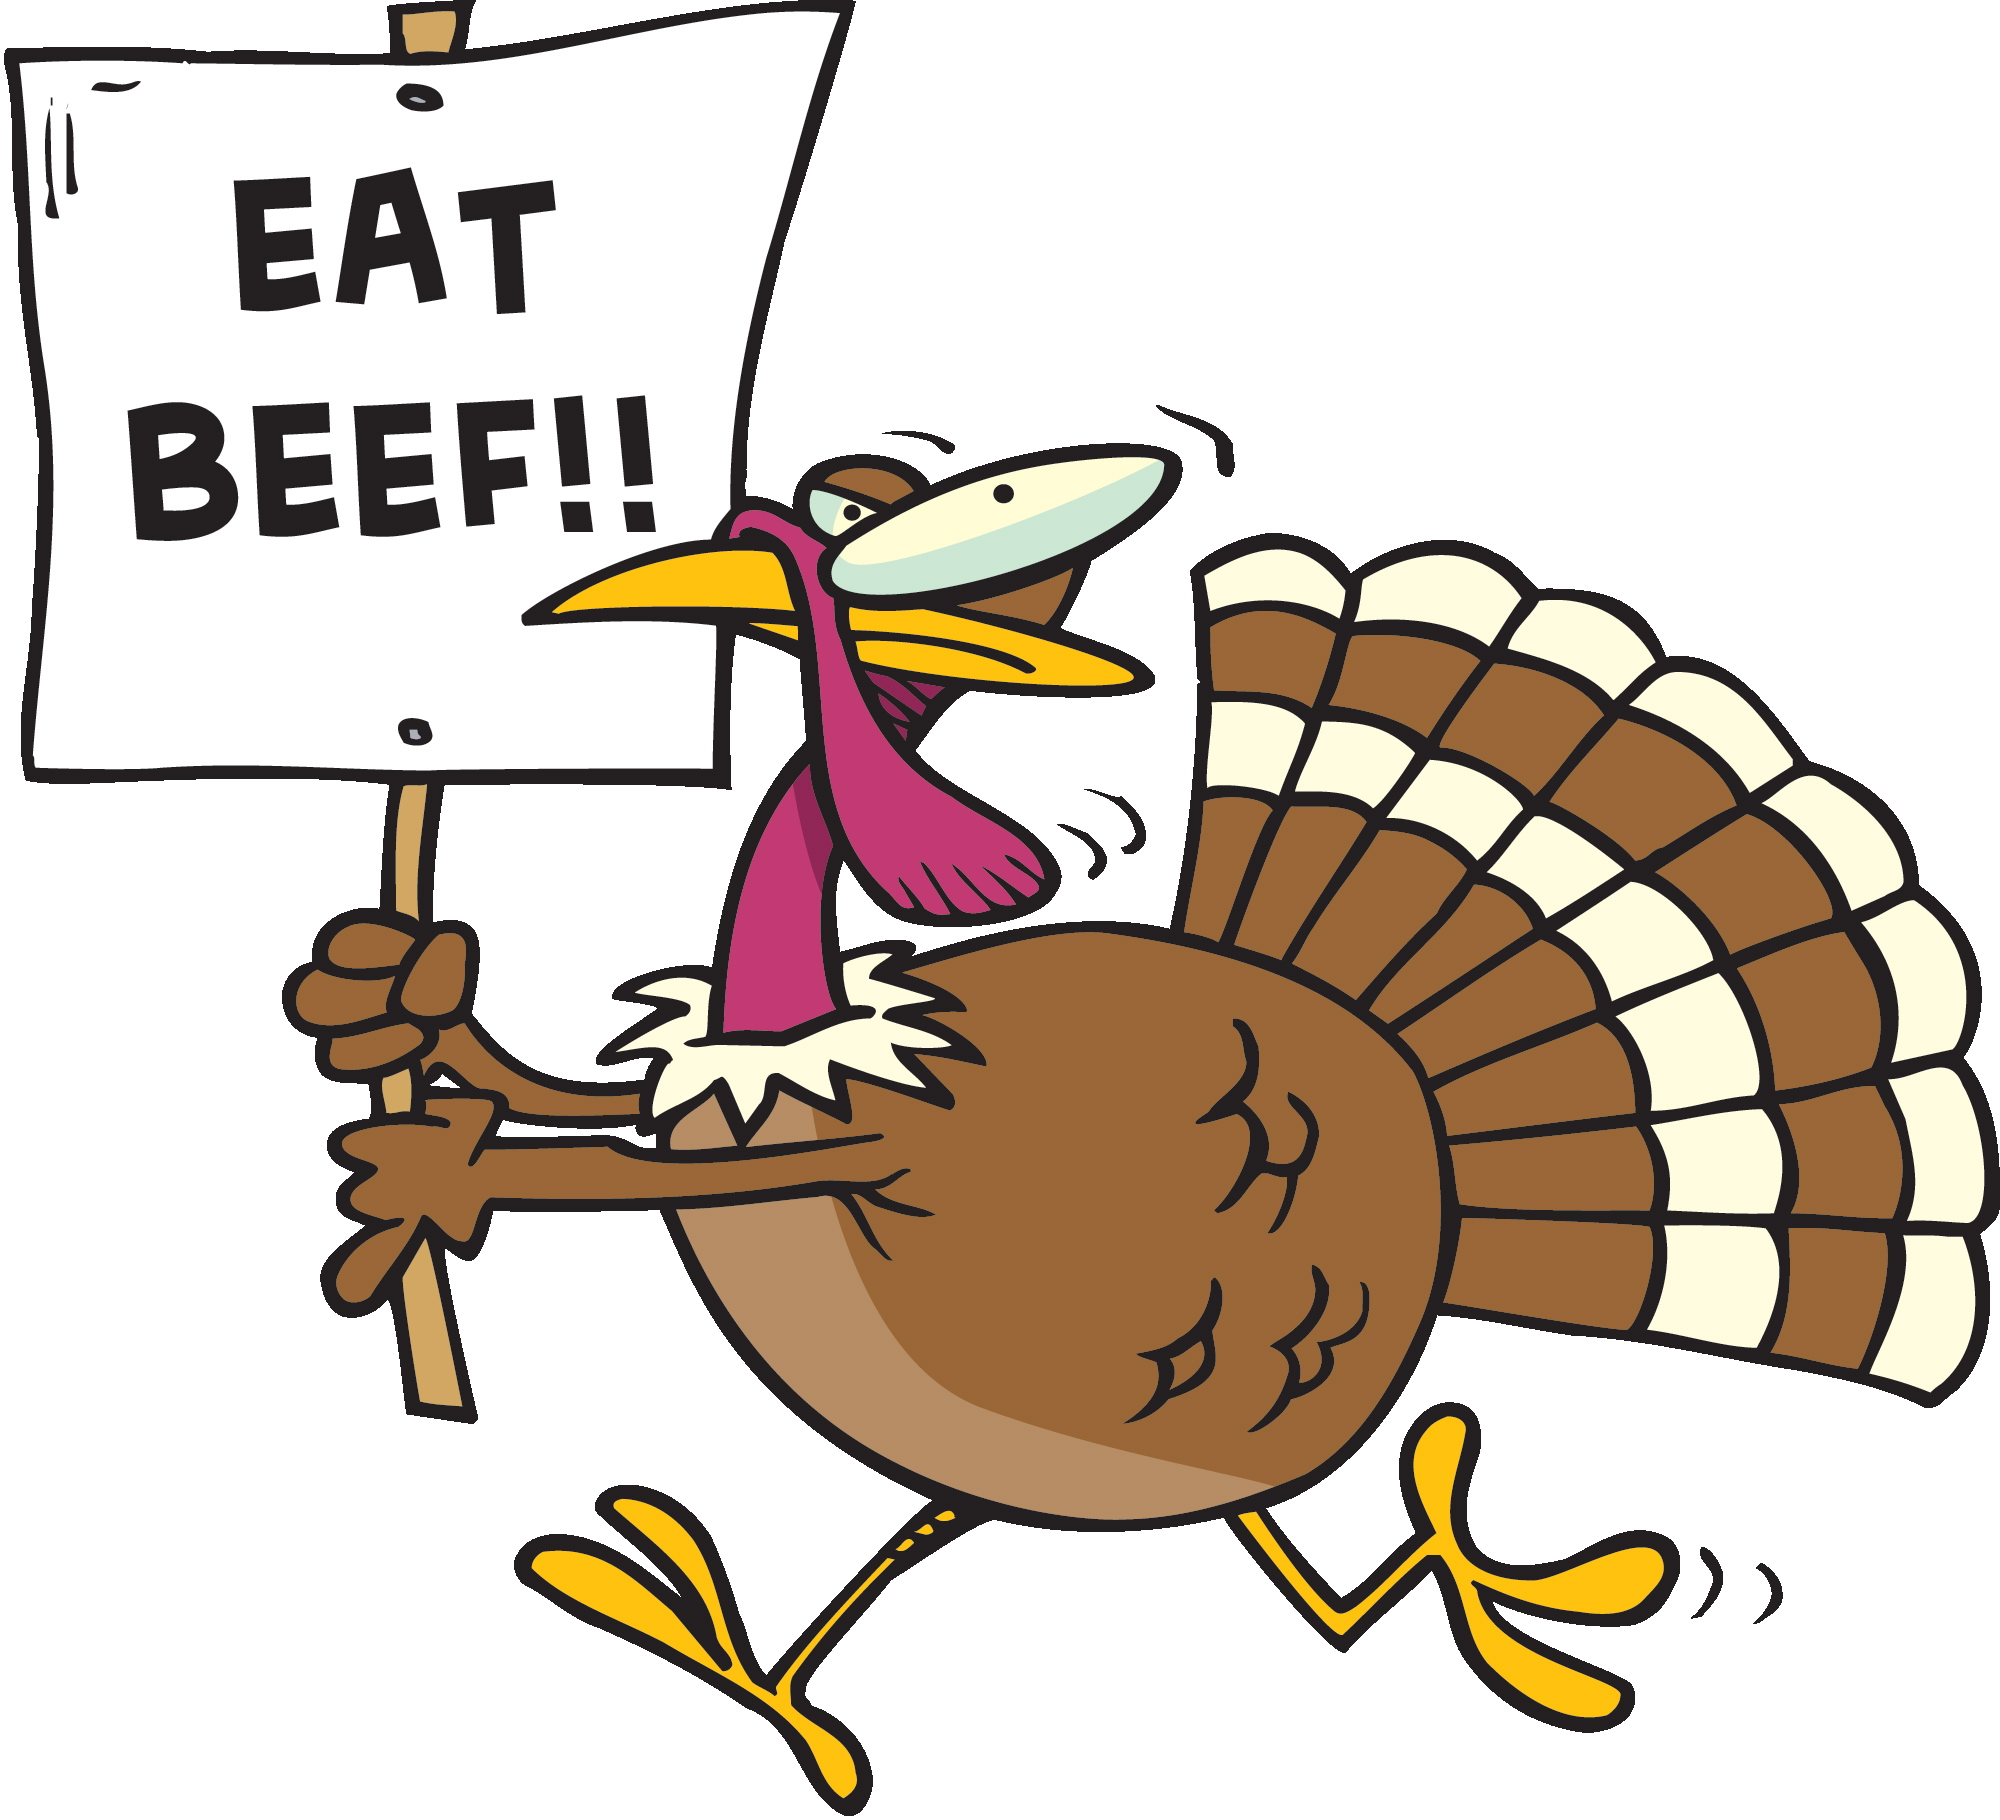 eat beef funny turkey clipart image clipart for thanksgiving dinner clip art for thanksgiving free